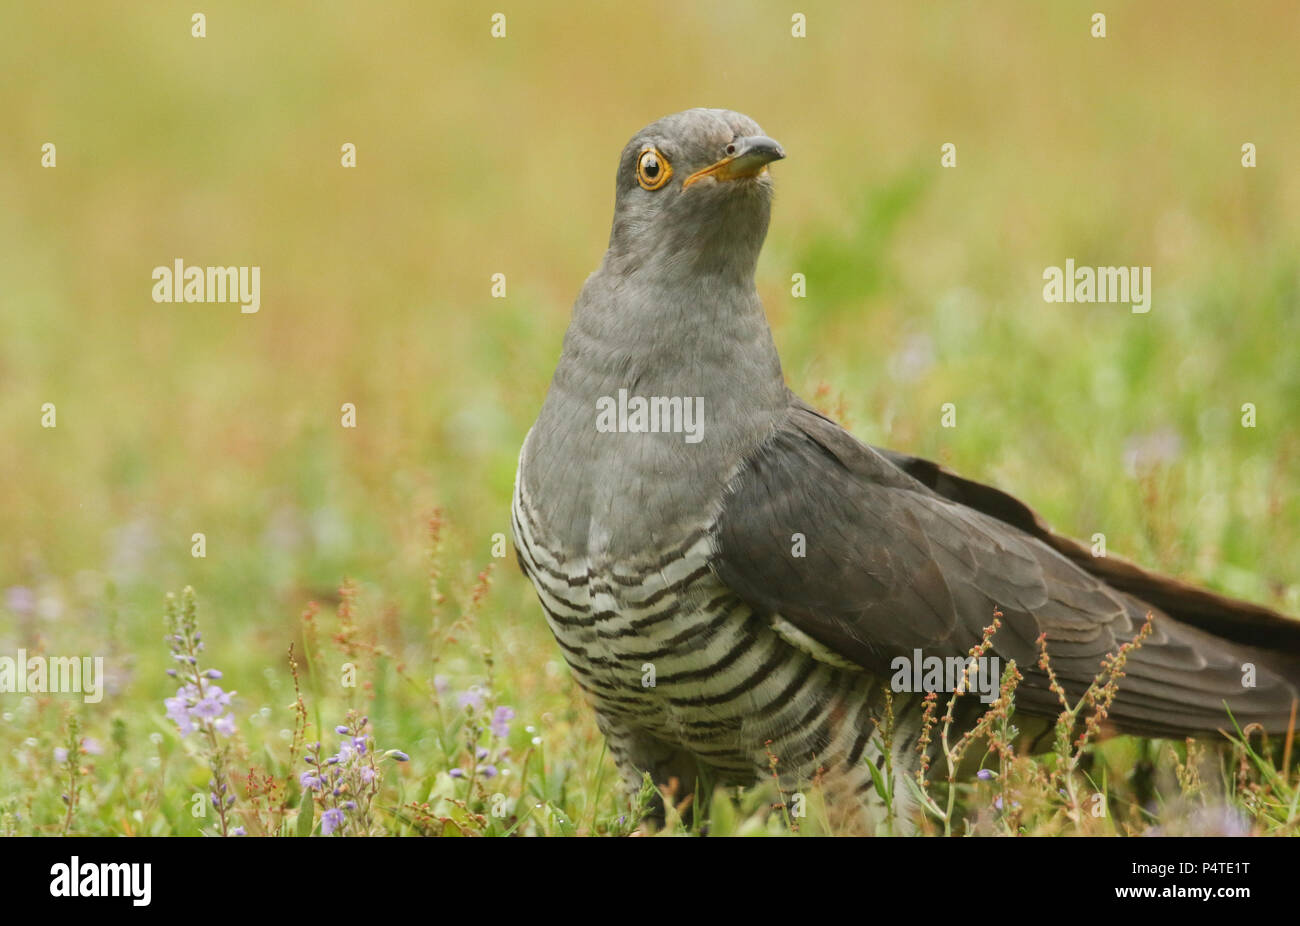 A stunning Cuckoo (Cuculus canorus) searching on the ground in a meadow for food. - Stock Image